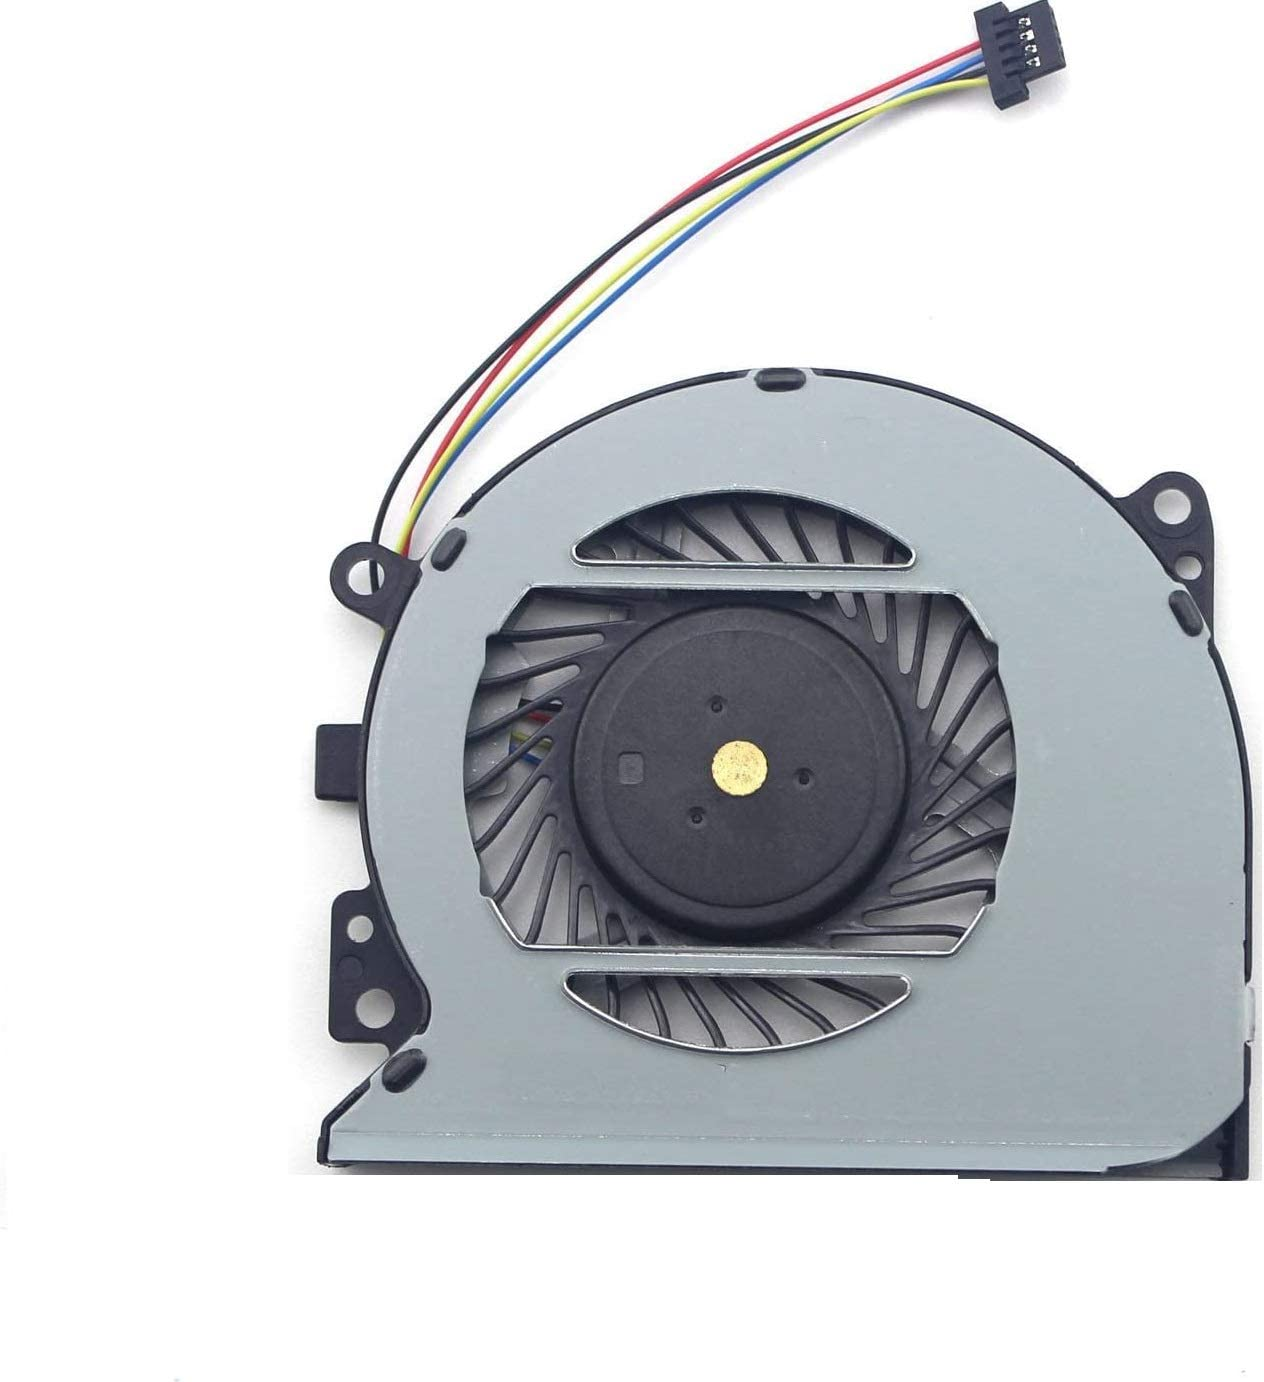 GIVWIZD Laptop Replacement CPU Cooling Fan for HP Envy X360 15-u111dx 15-u337cl 15-u000na 15-u001na 15-u001ng 15-u010dx 15-u011dx